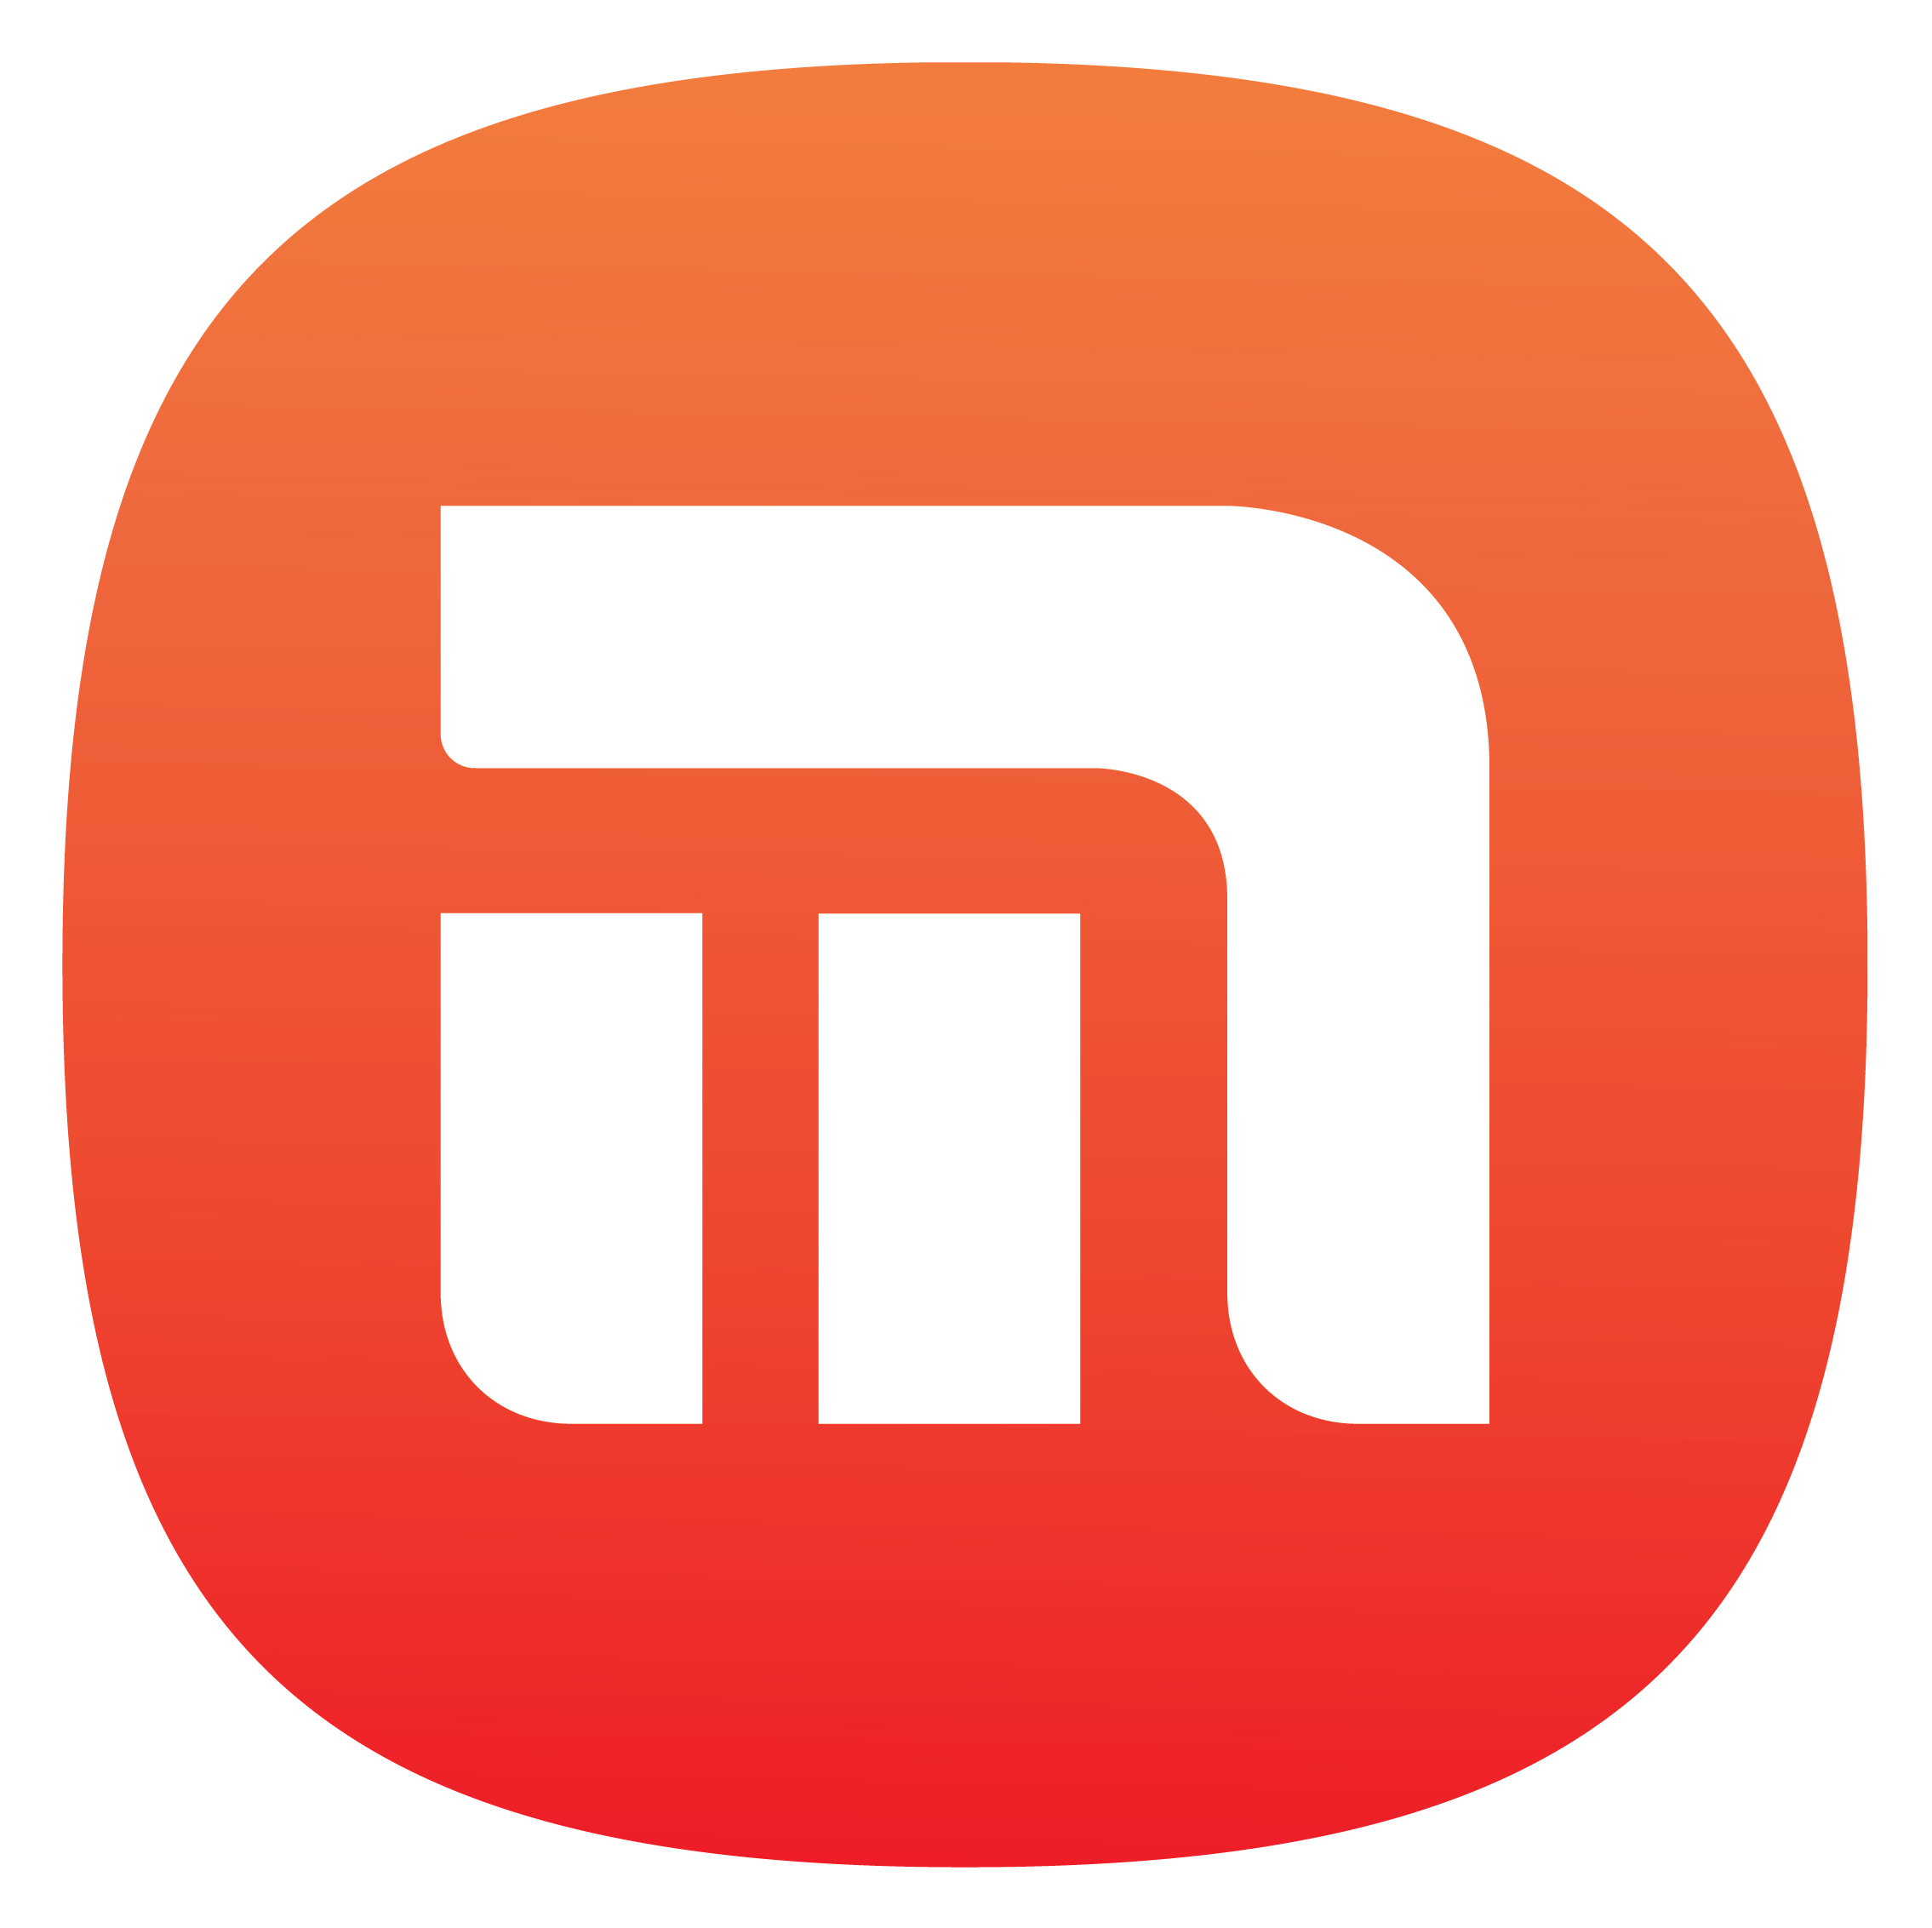 The death of Mxit. Officially